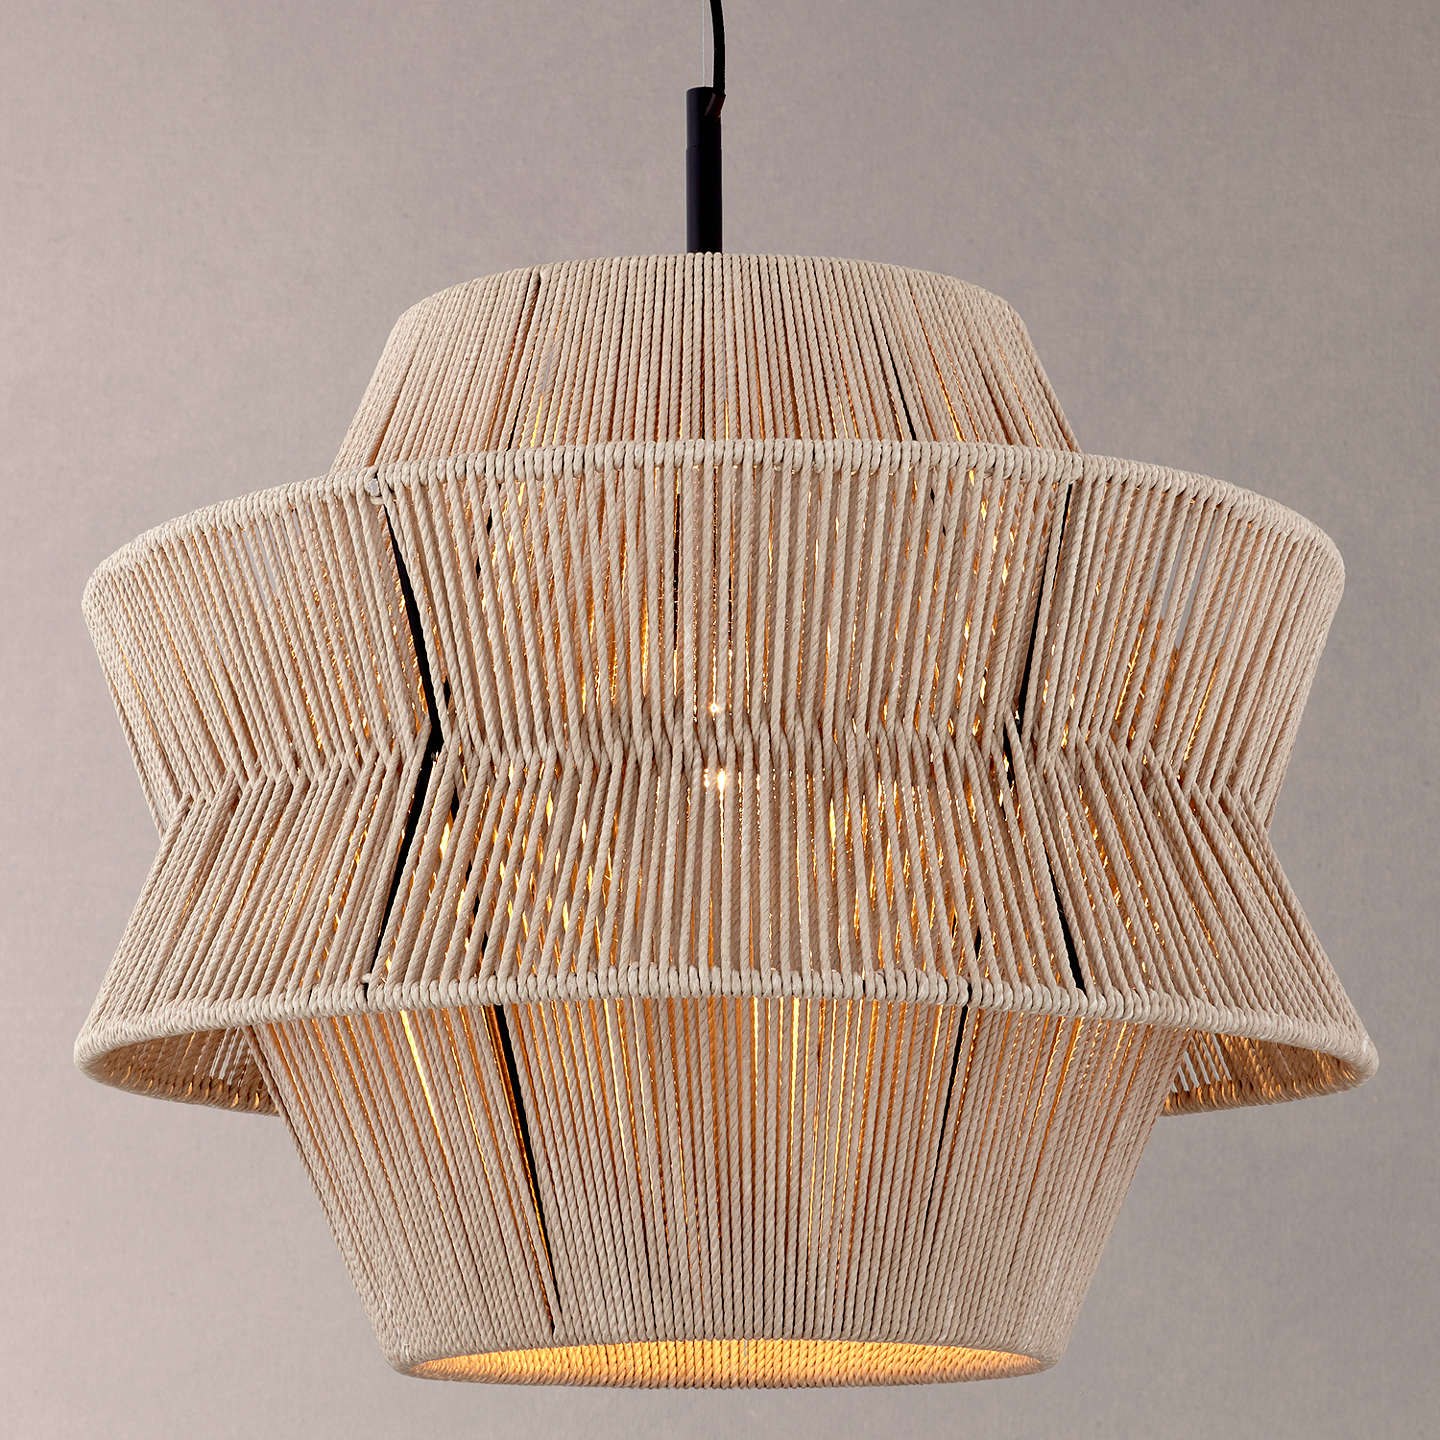 John lewis truman string pendant ceiling light at john lewis buyjohn lewis truman string pendant ceiling light online at johnlewis mozeypictures